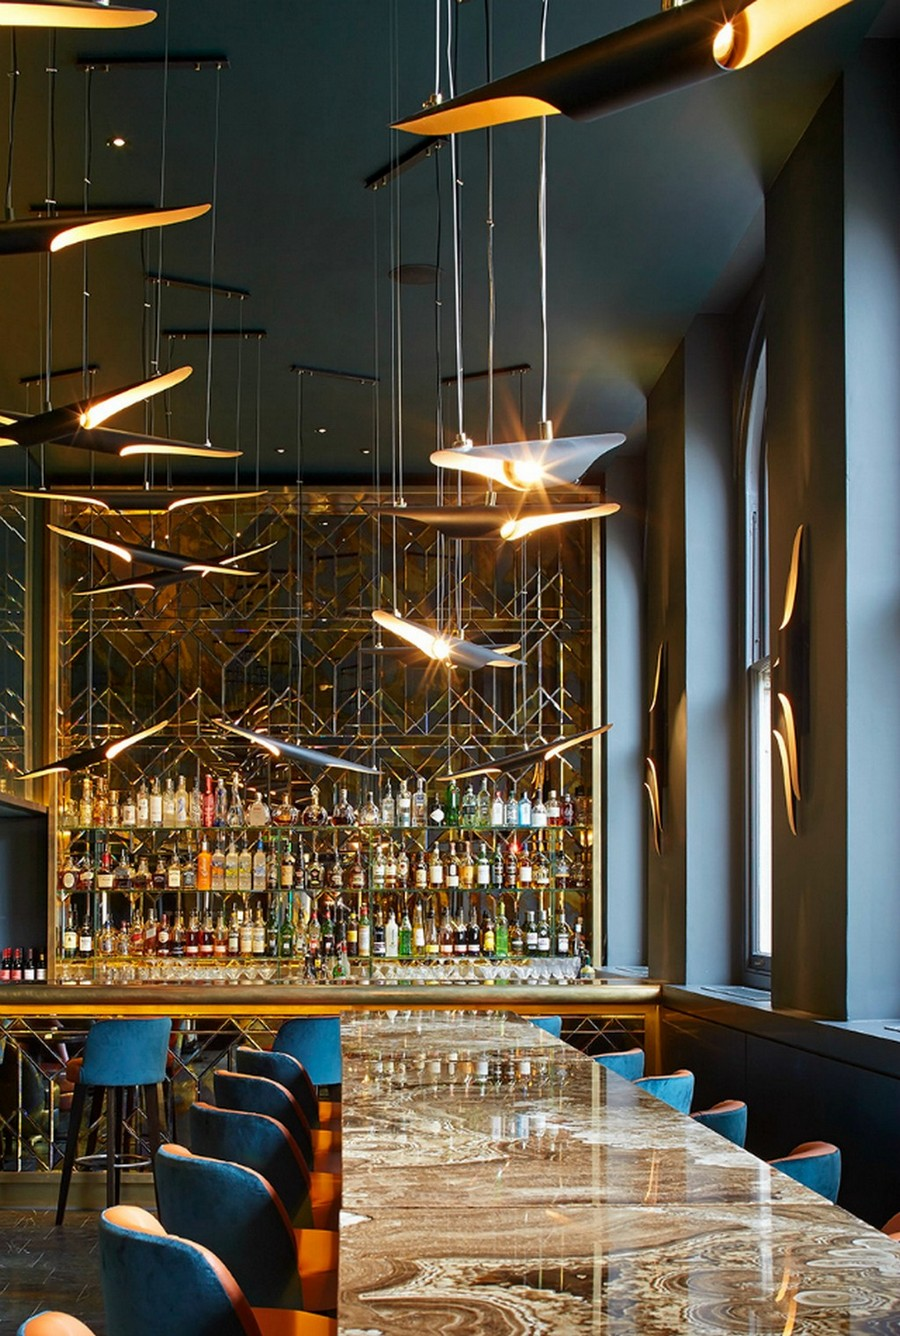 Best Restaurant Lighting Design Ideas 1 17